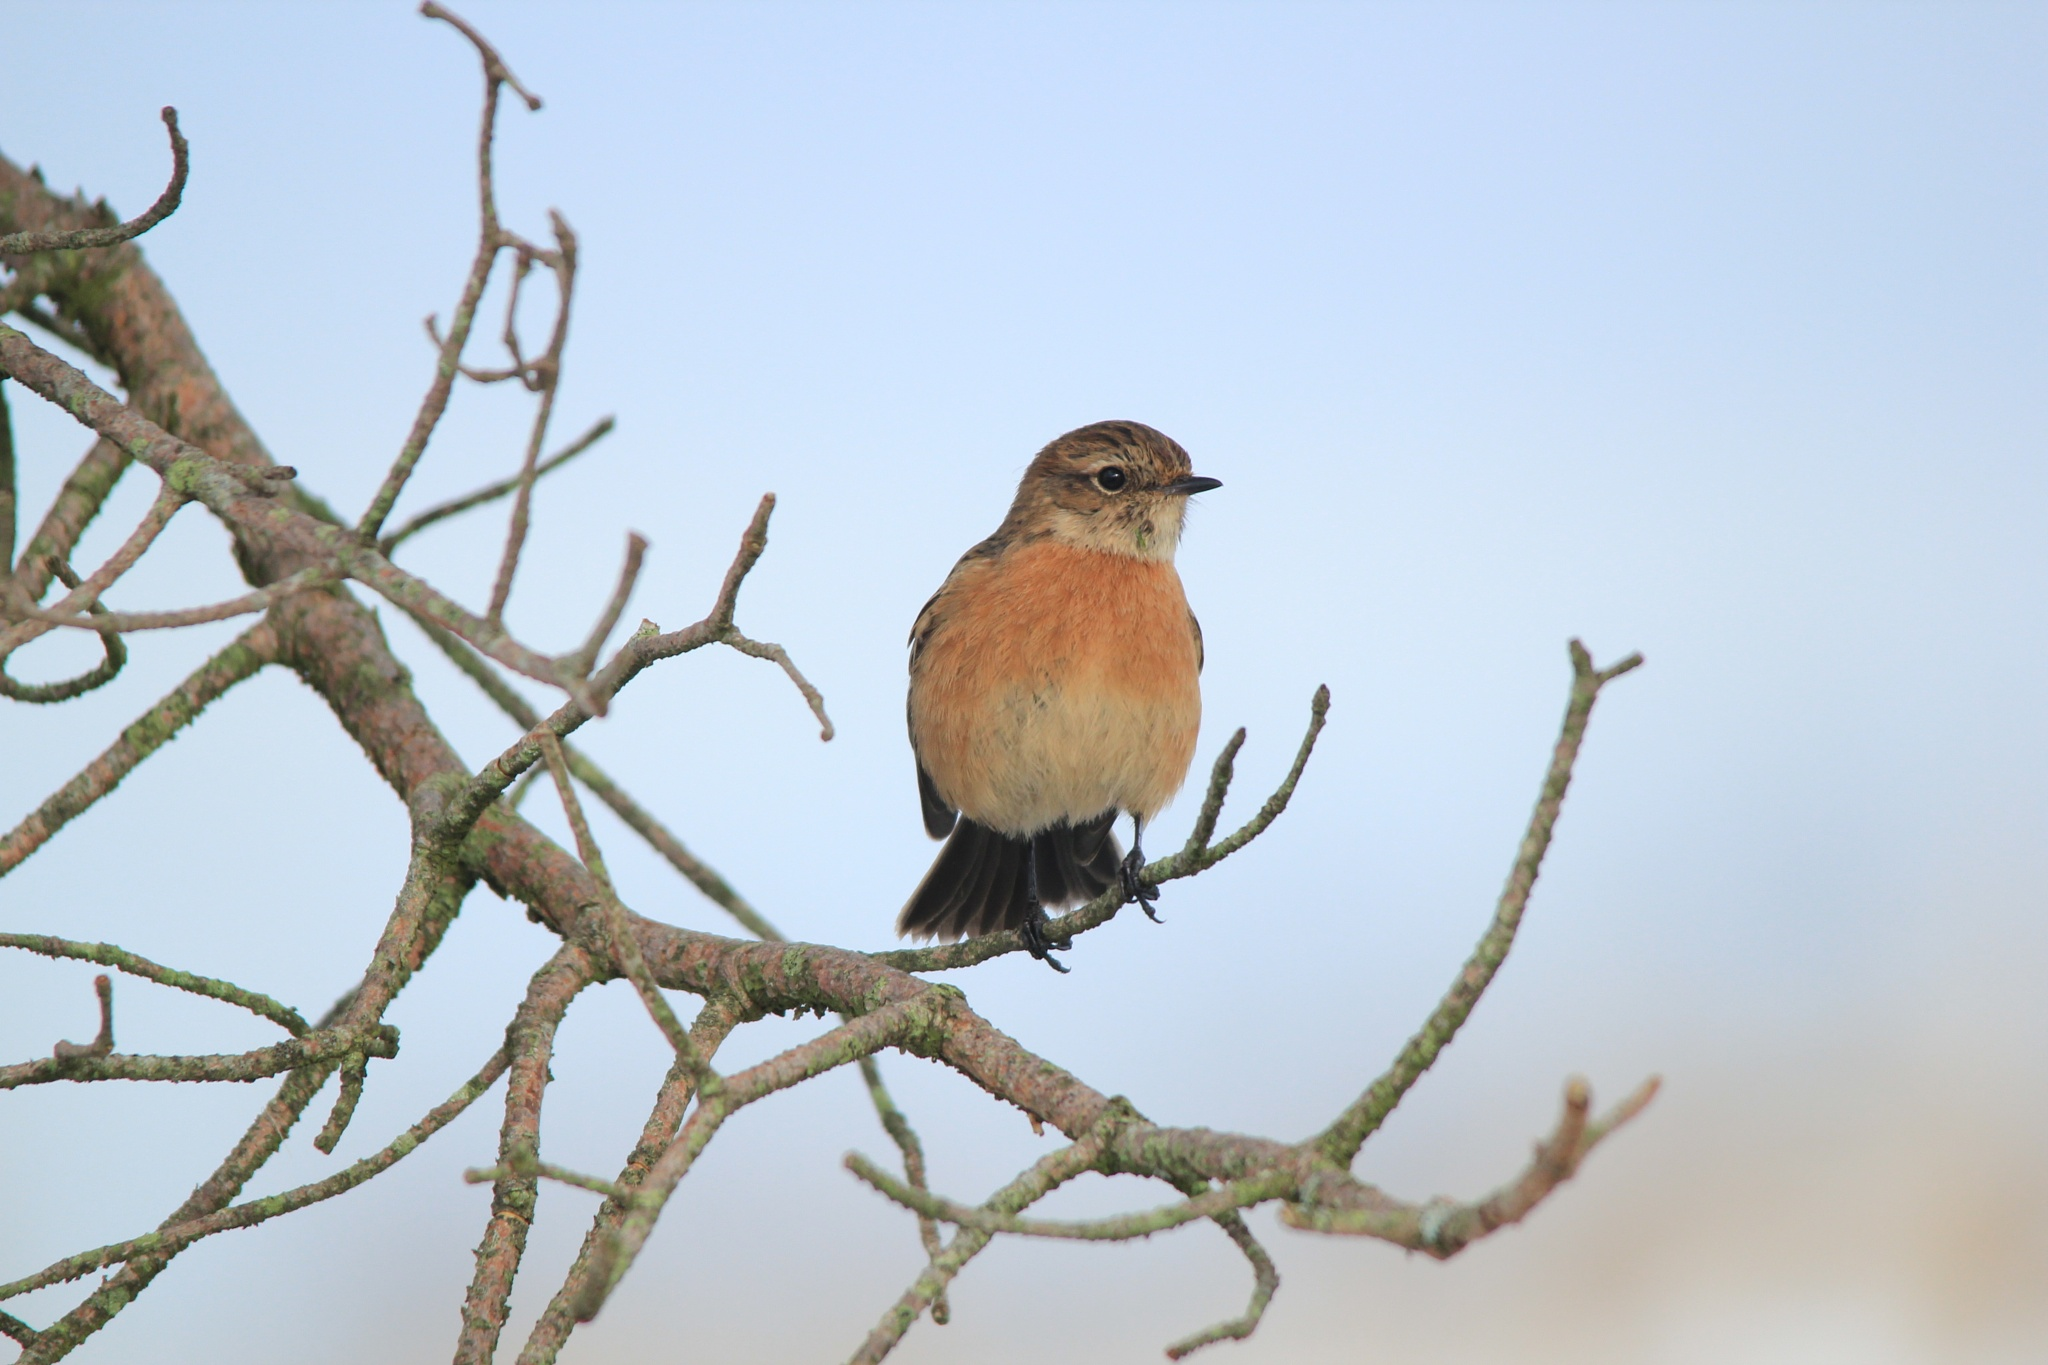 Female Stonechat by annecotton